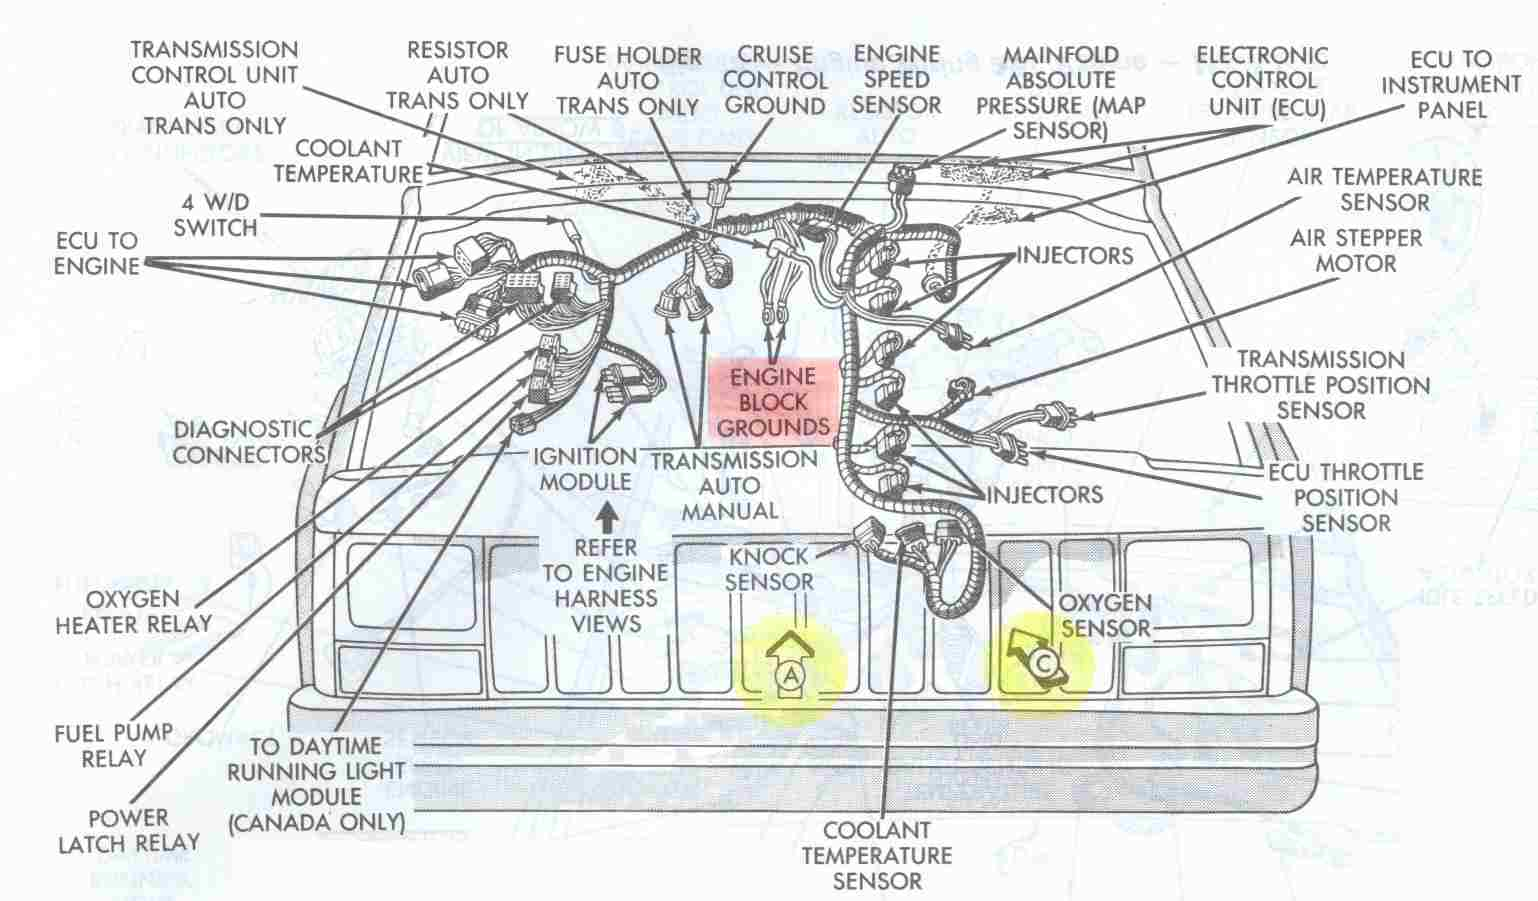 96 grand cherokee wiring diagram 13 pin trailer socket uk jeep get free image